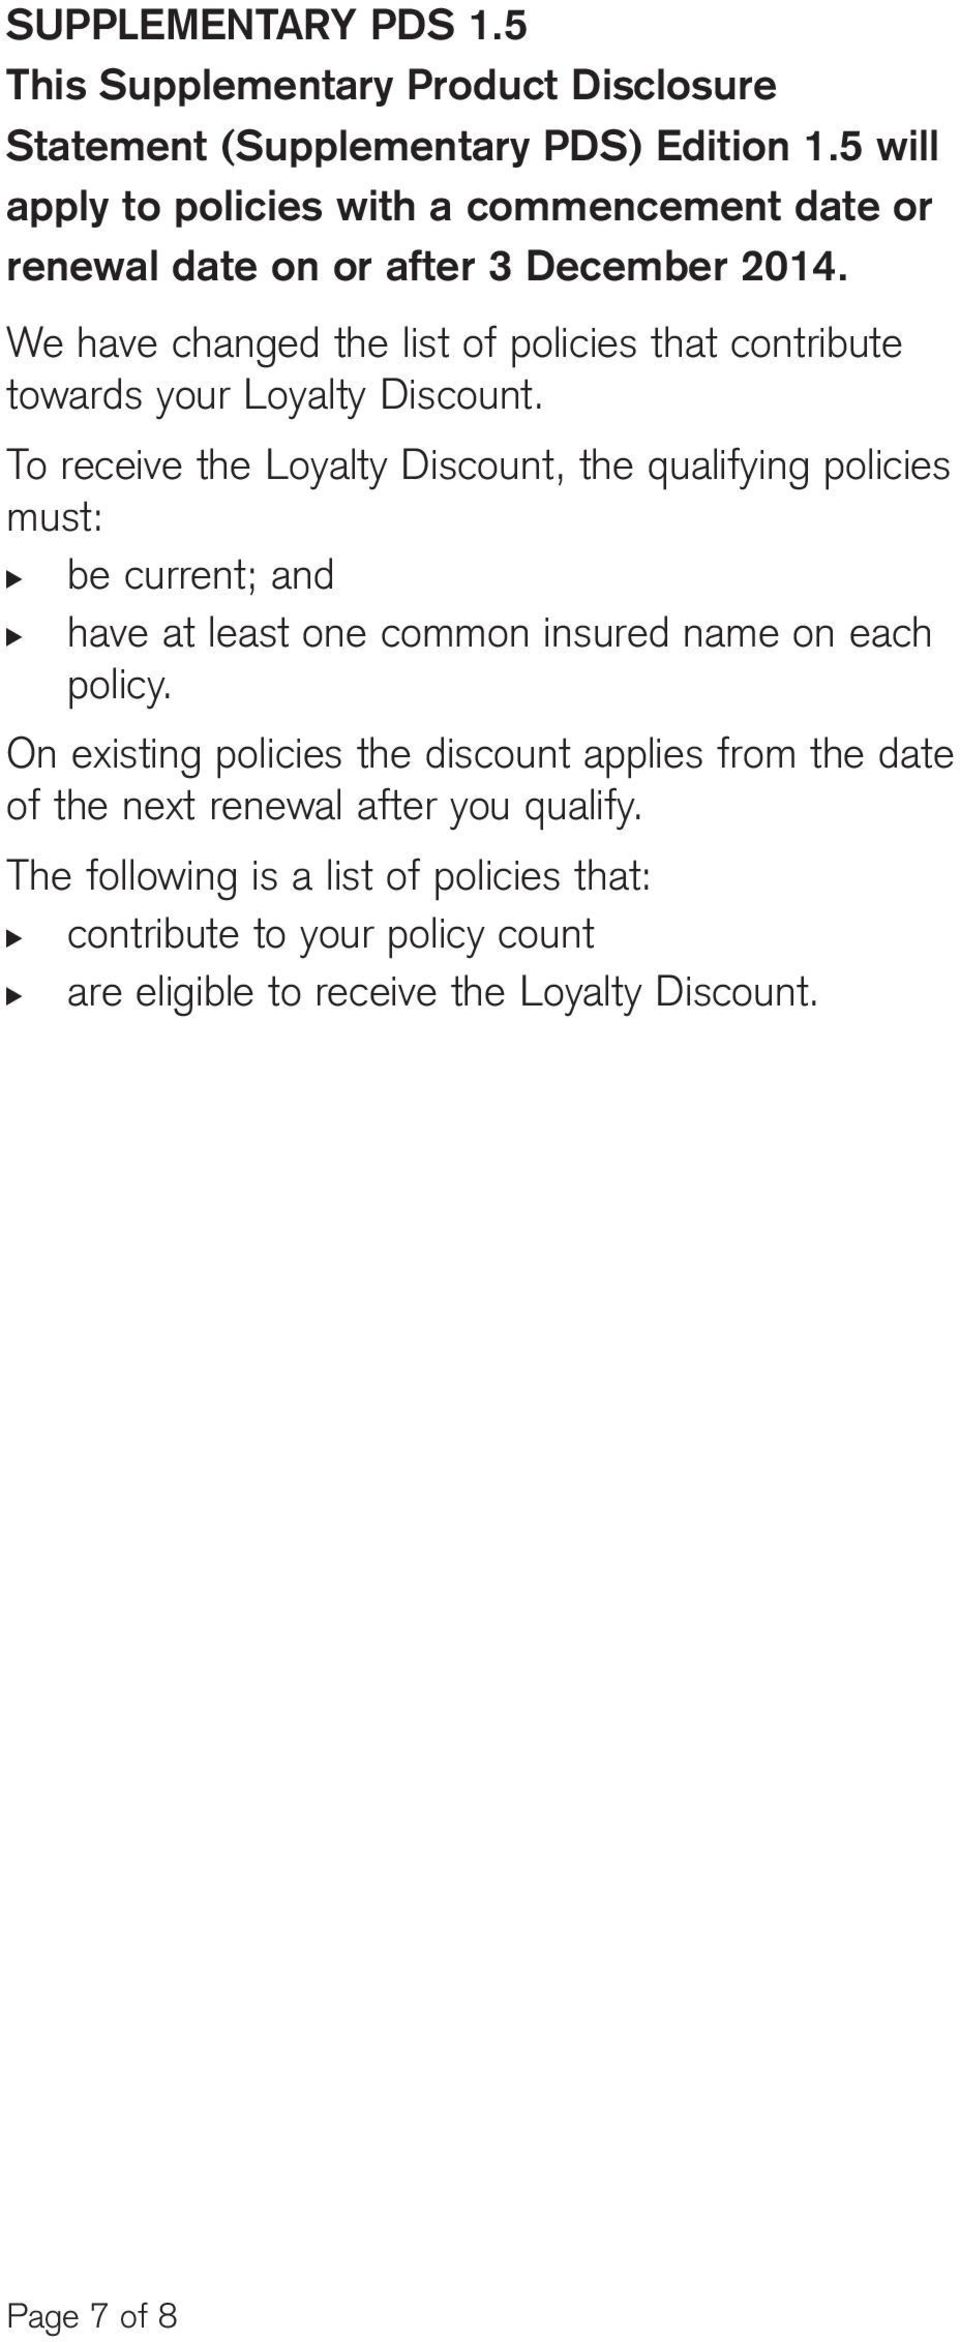 We have changed the list of policies that contribute towards your Loyalty Discount.